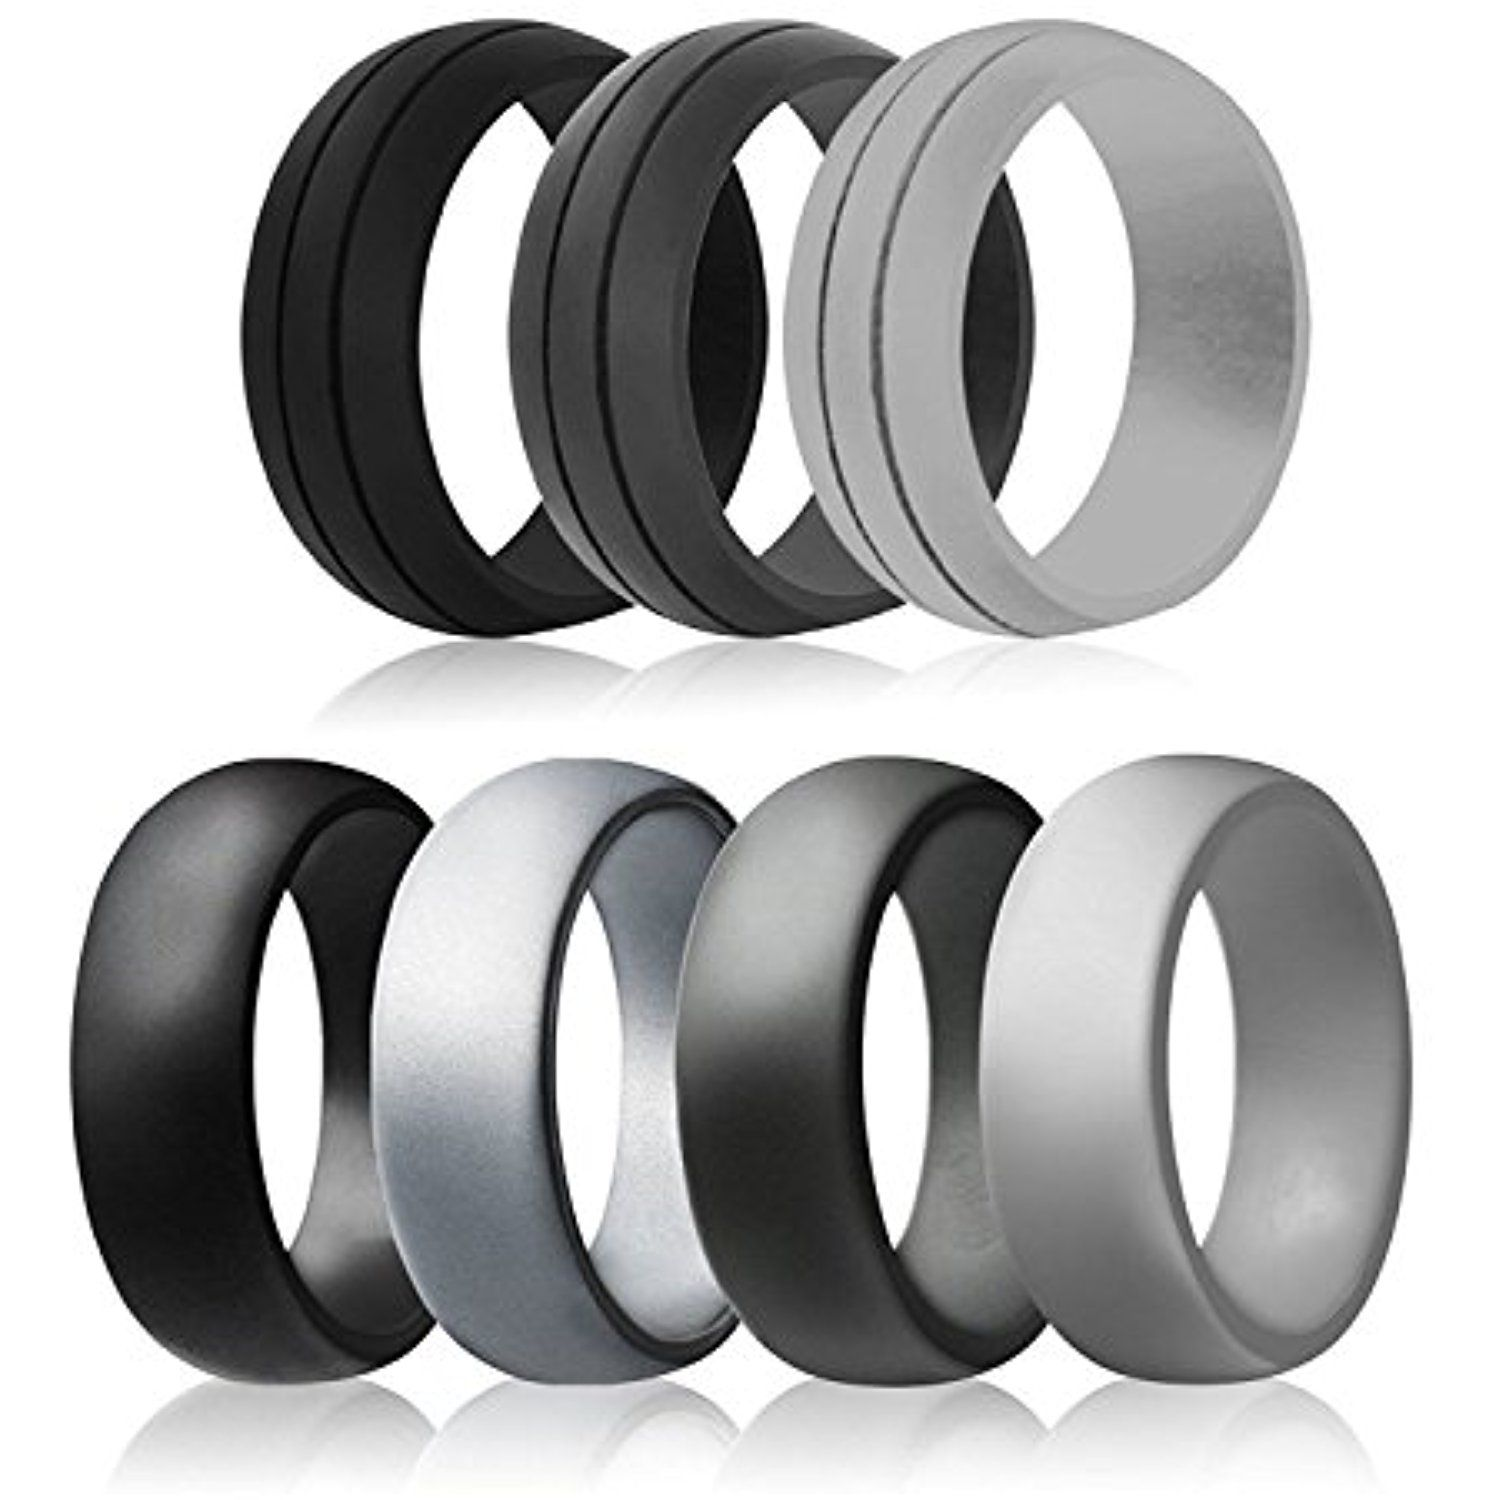 Ikonfitness Silicone Wedding Ring for Men and Women 3 Pack Comfortable Fit Rubber Wedding Ring All Black Come with a Metal Box